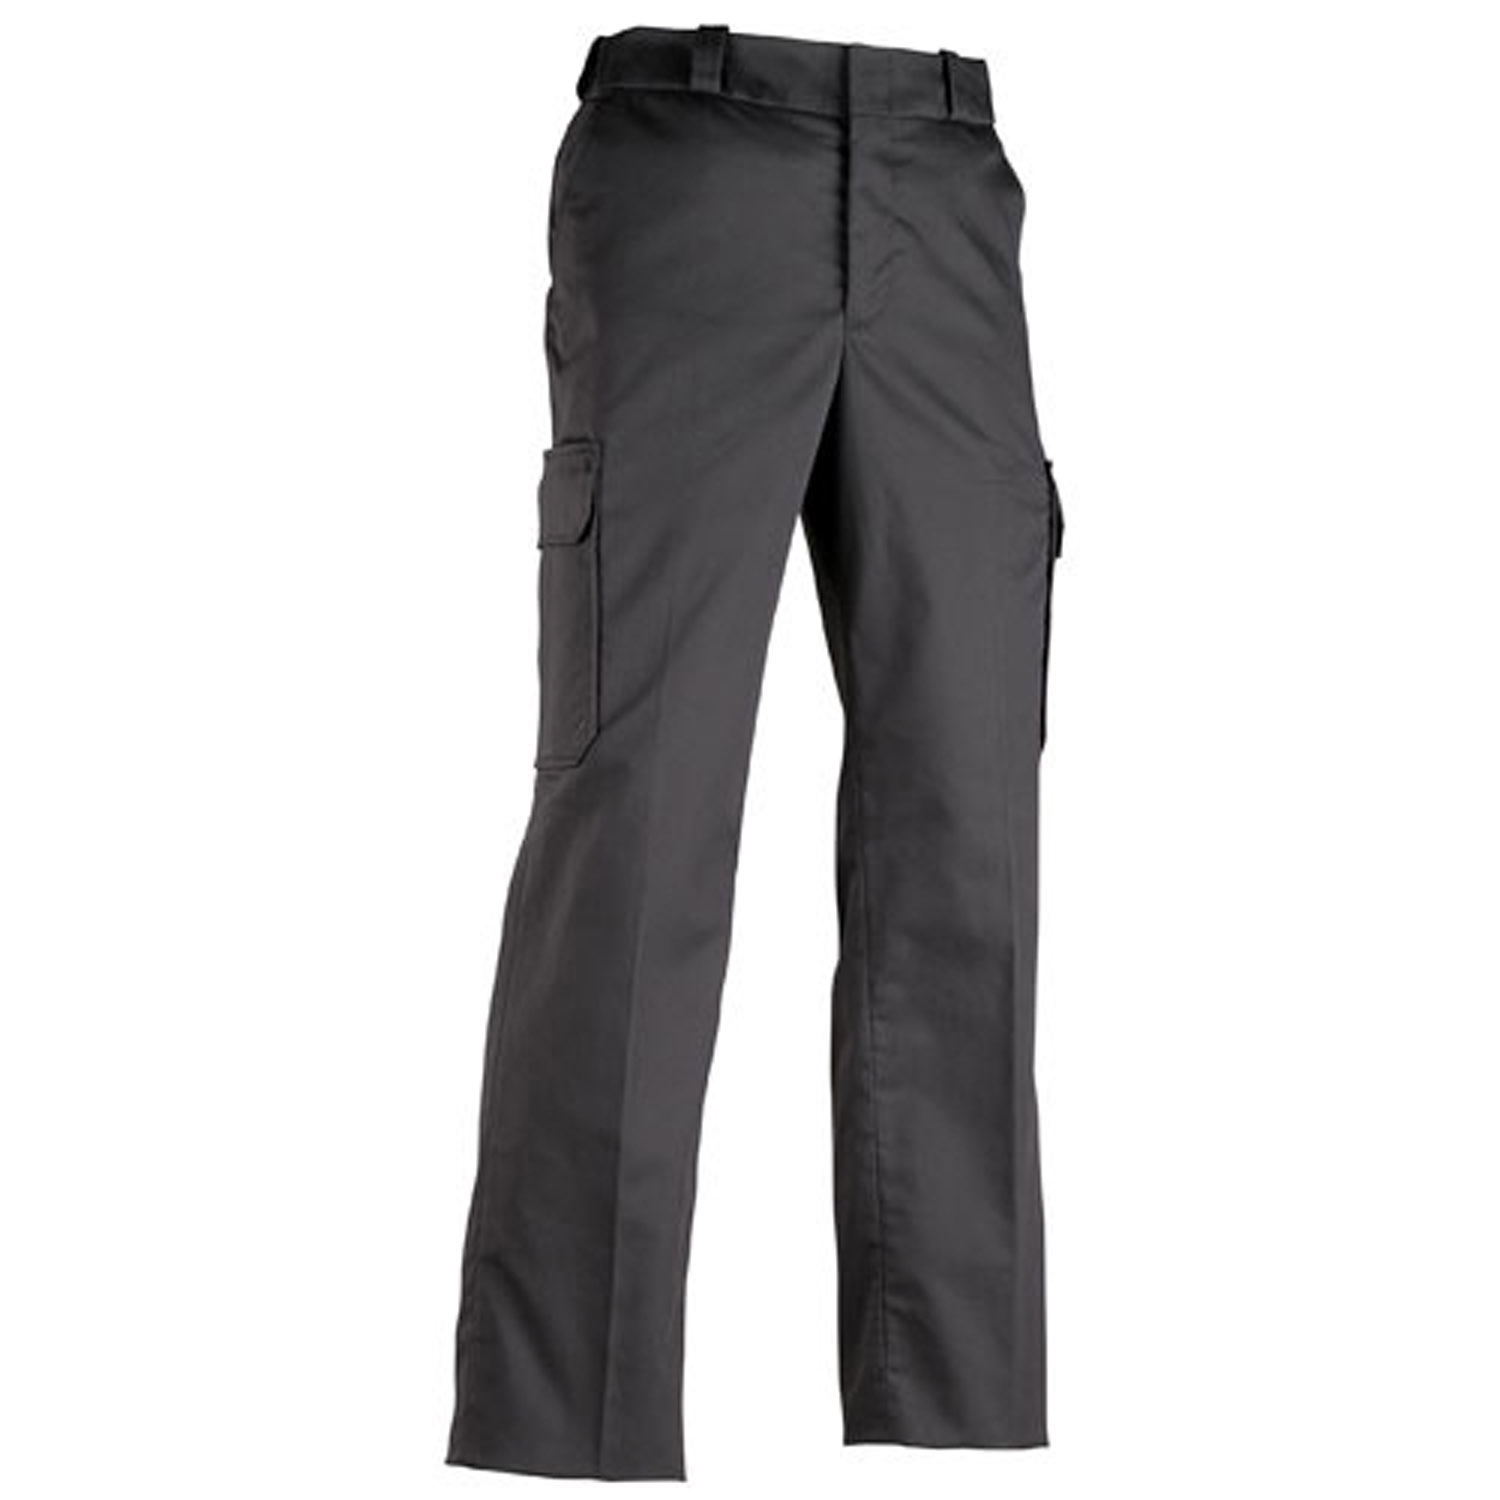 Elbeco TexTrop2 Women's Cargo Pocket Pants